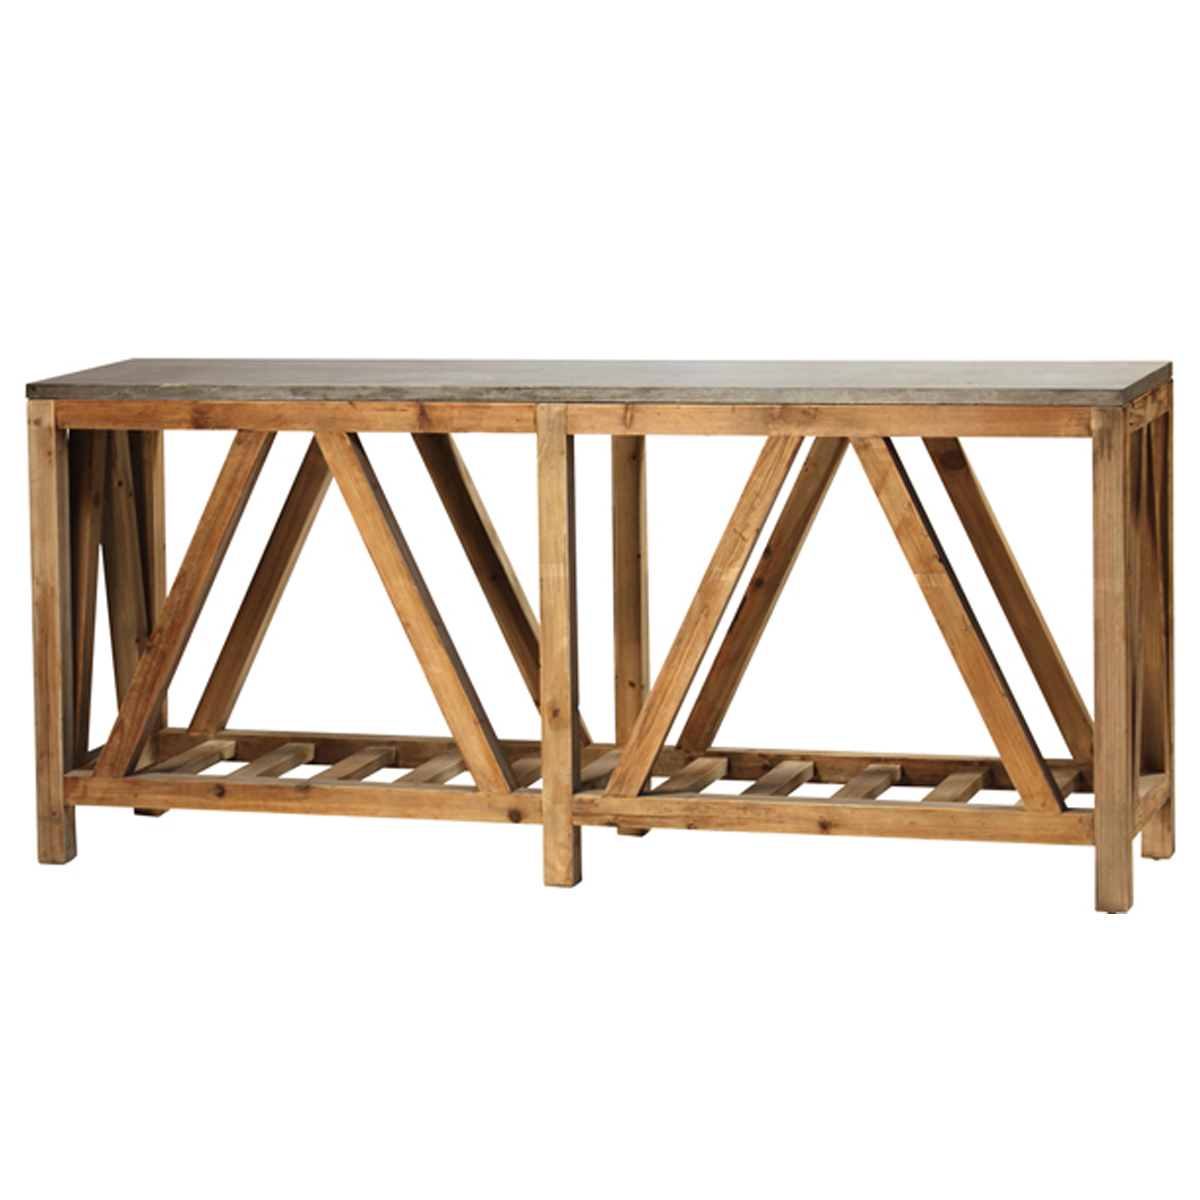 19Thc Belgian Bluestone Console Table At 1Stdibs Buy Console Table Regarding Bluestone Console Tables (Gallery 13 of 20)